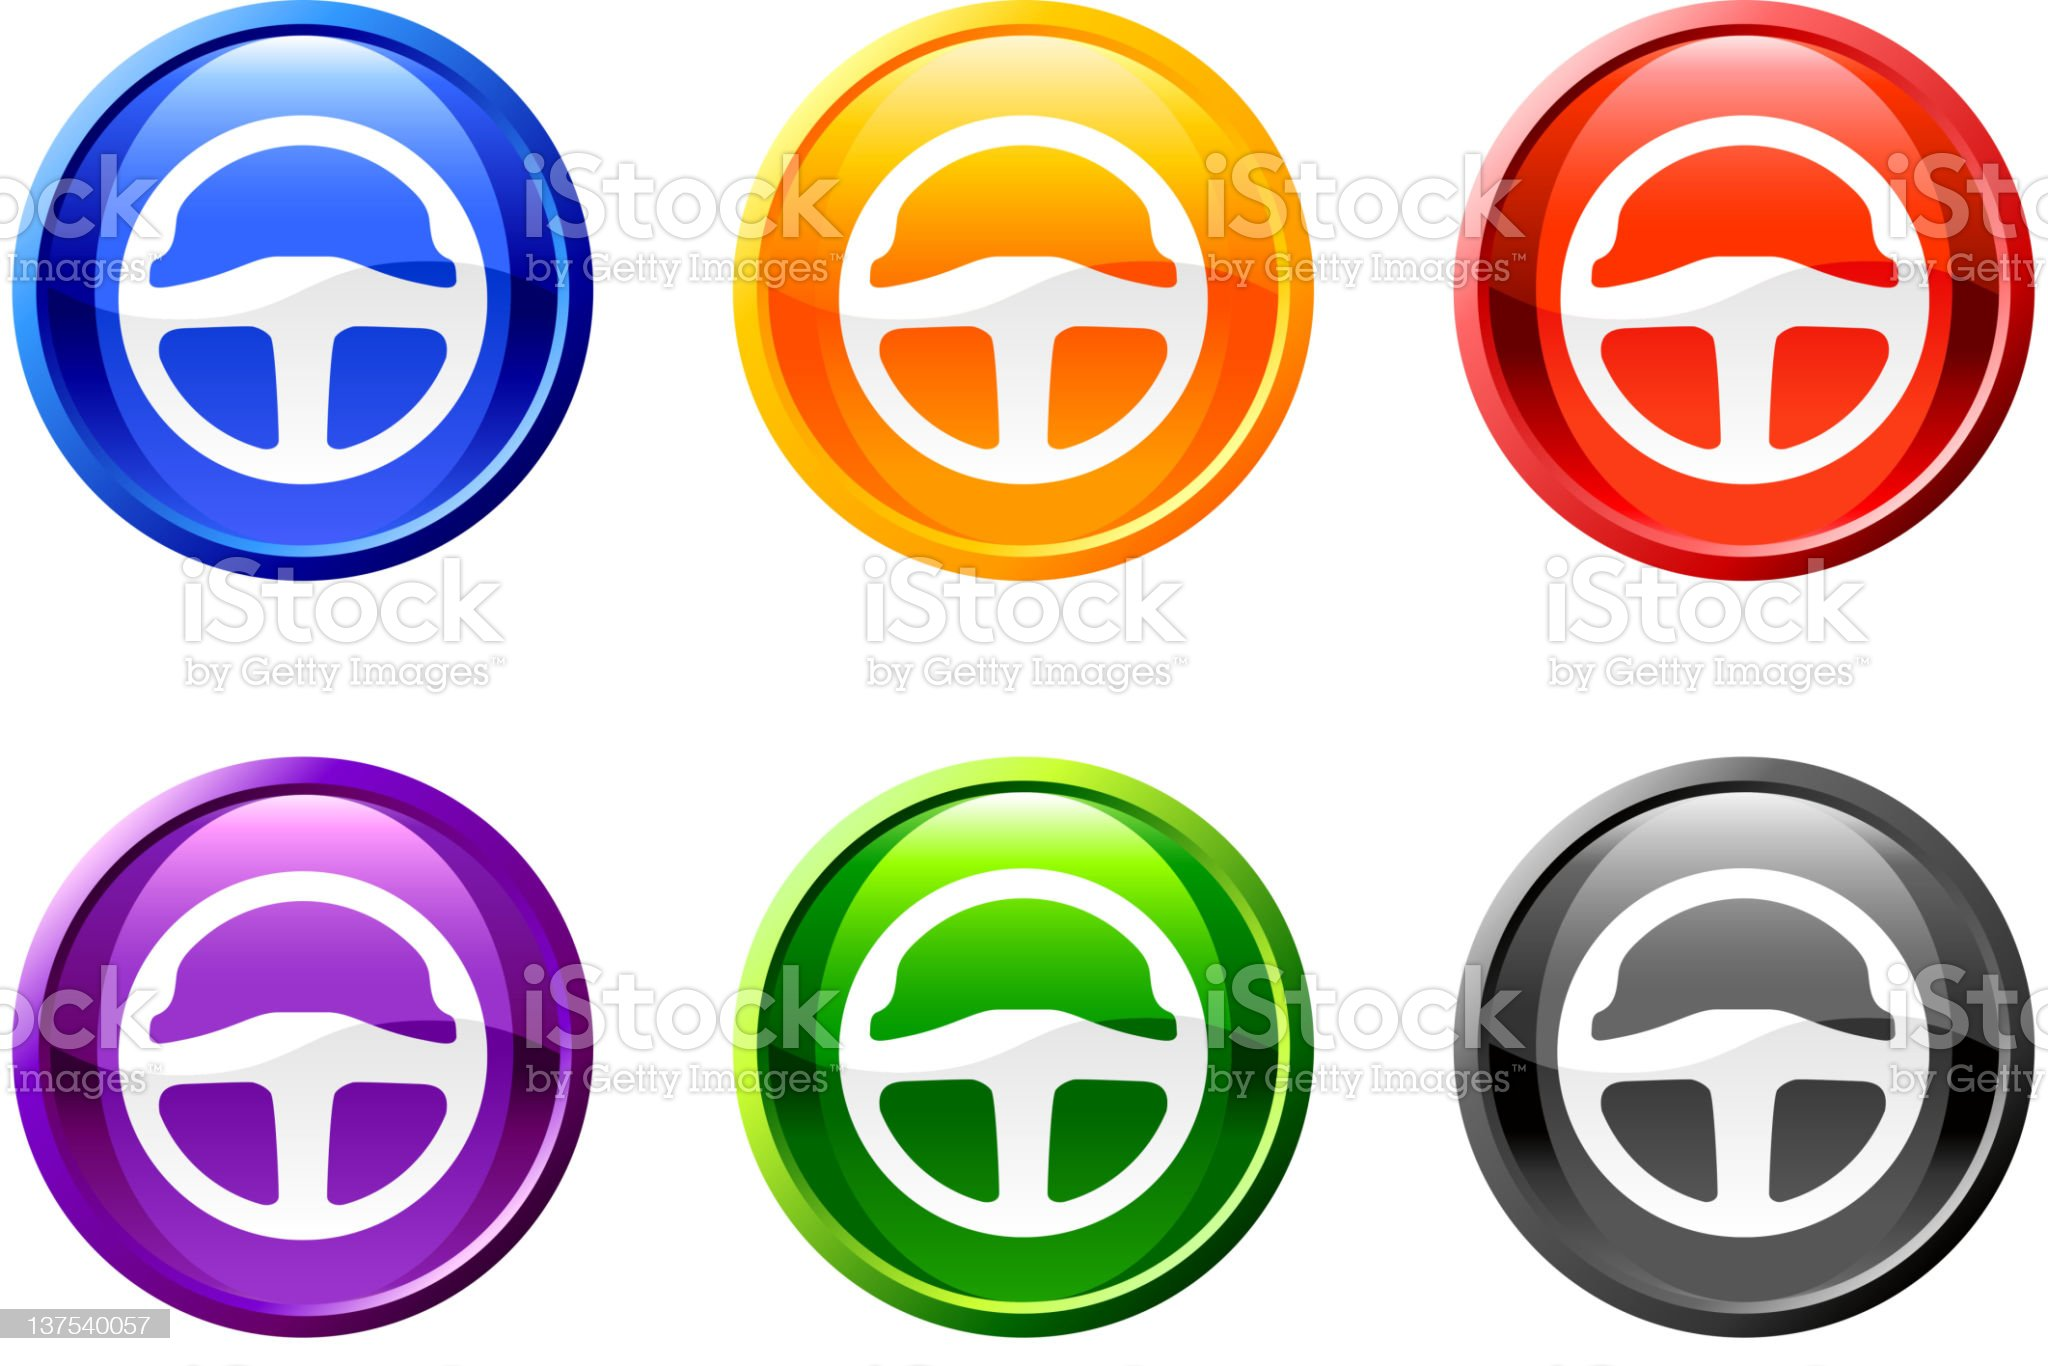 steering wheel royalty free vector icon set round buttons royalty-free stock vector art